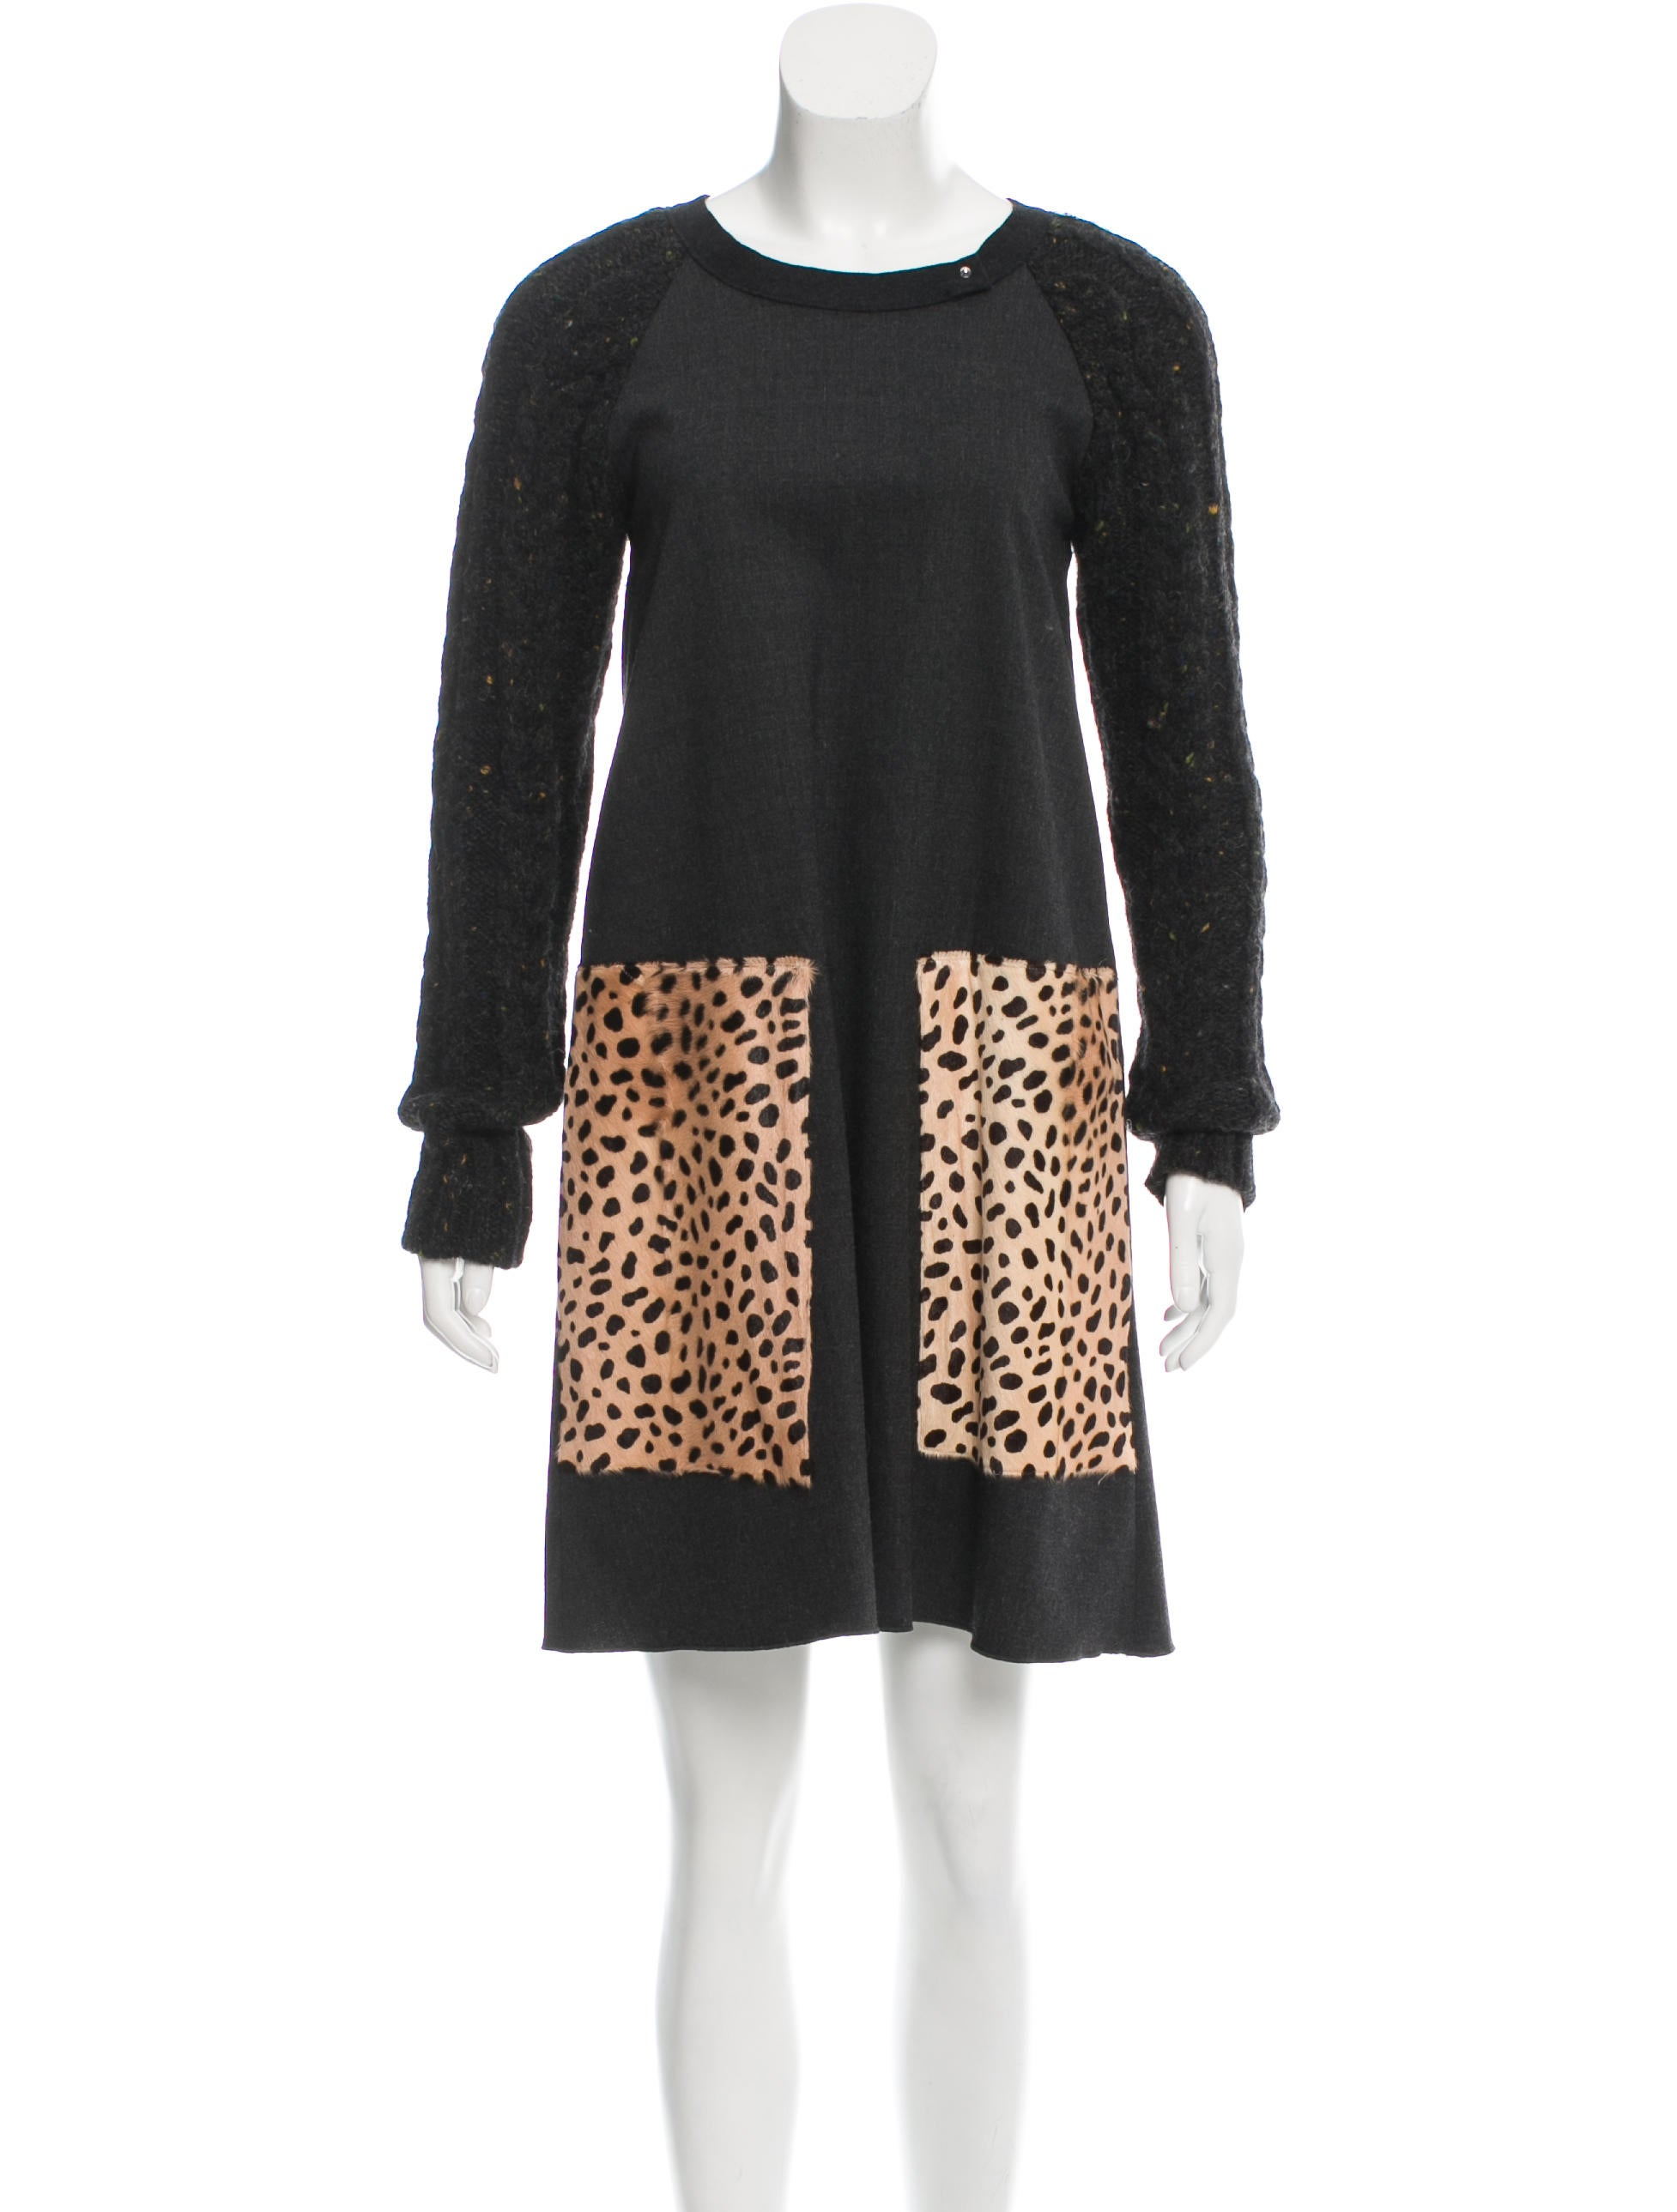 Hache Wool Sweater Dress - Clothing - WH421314 | The RealReal